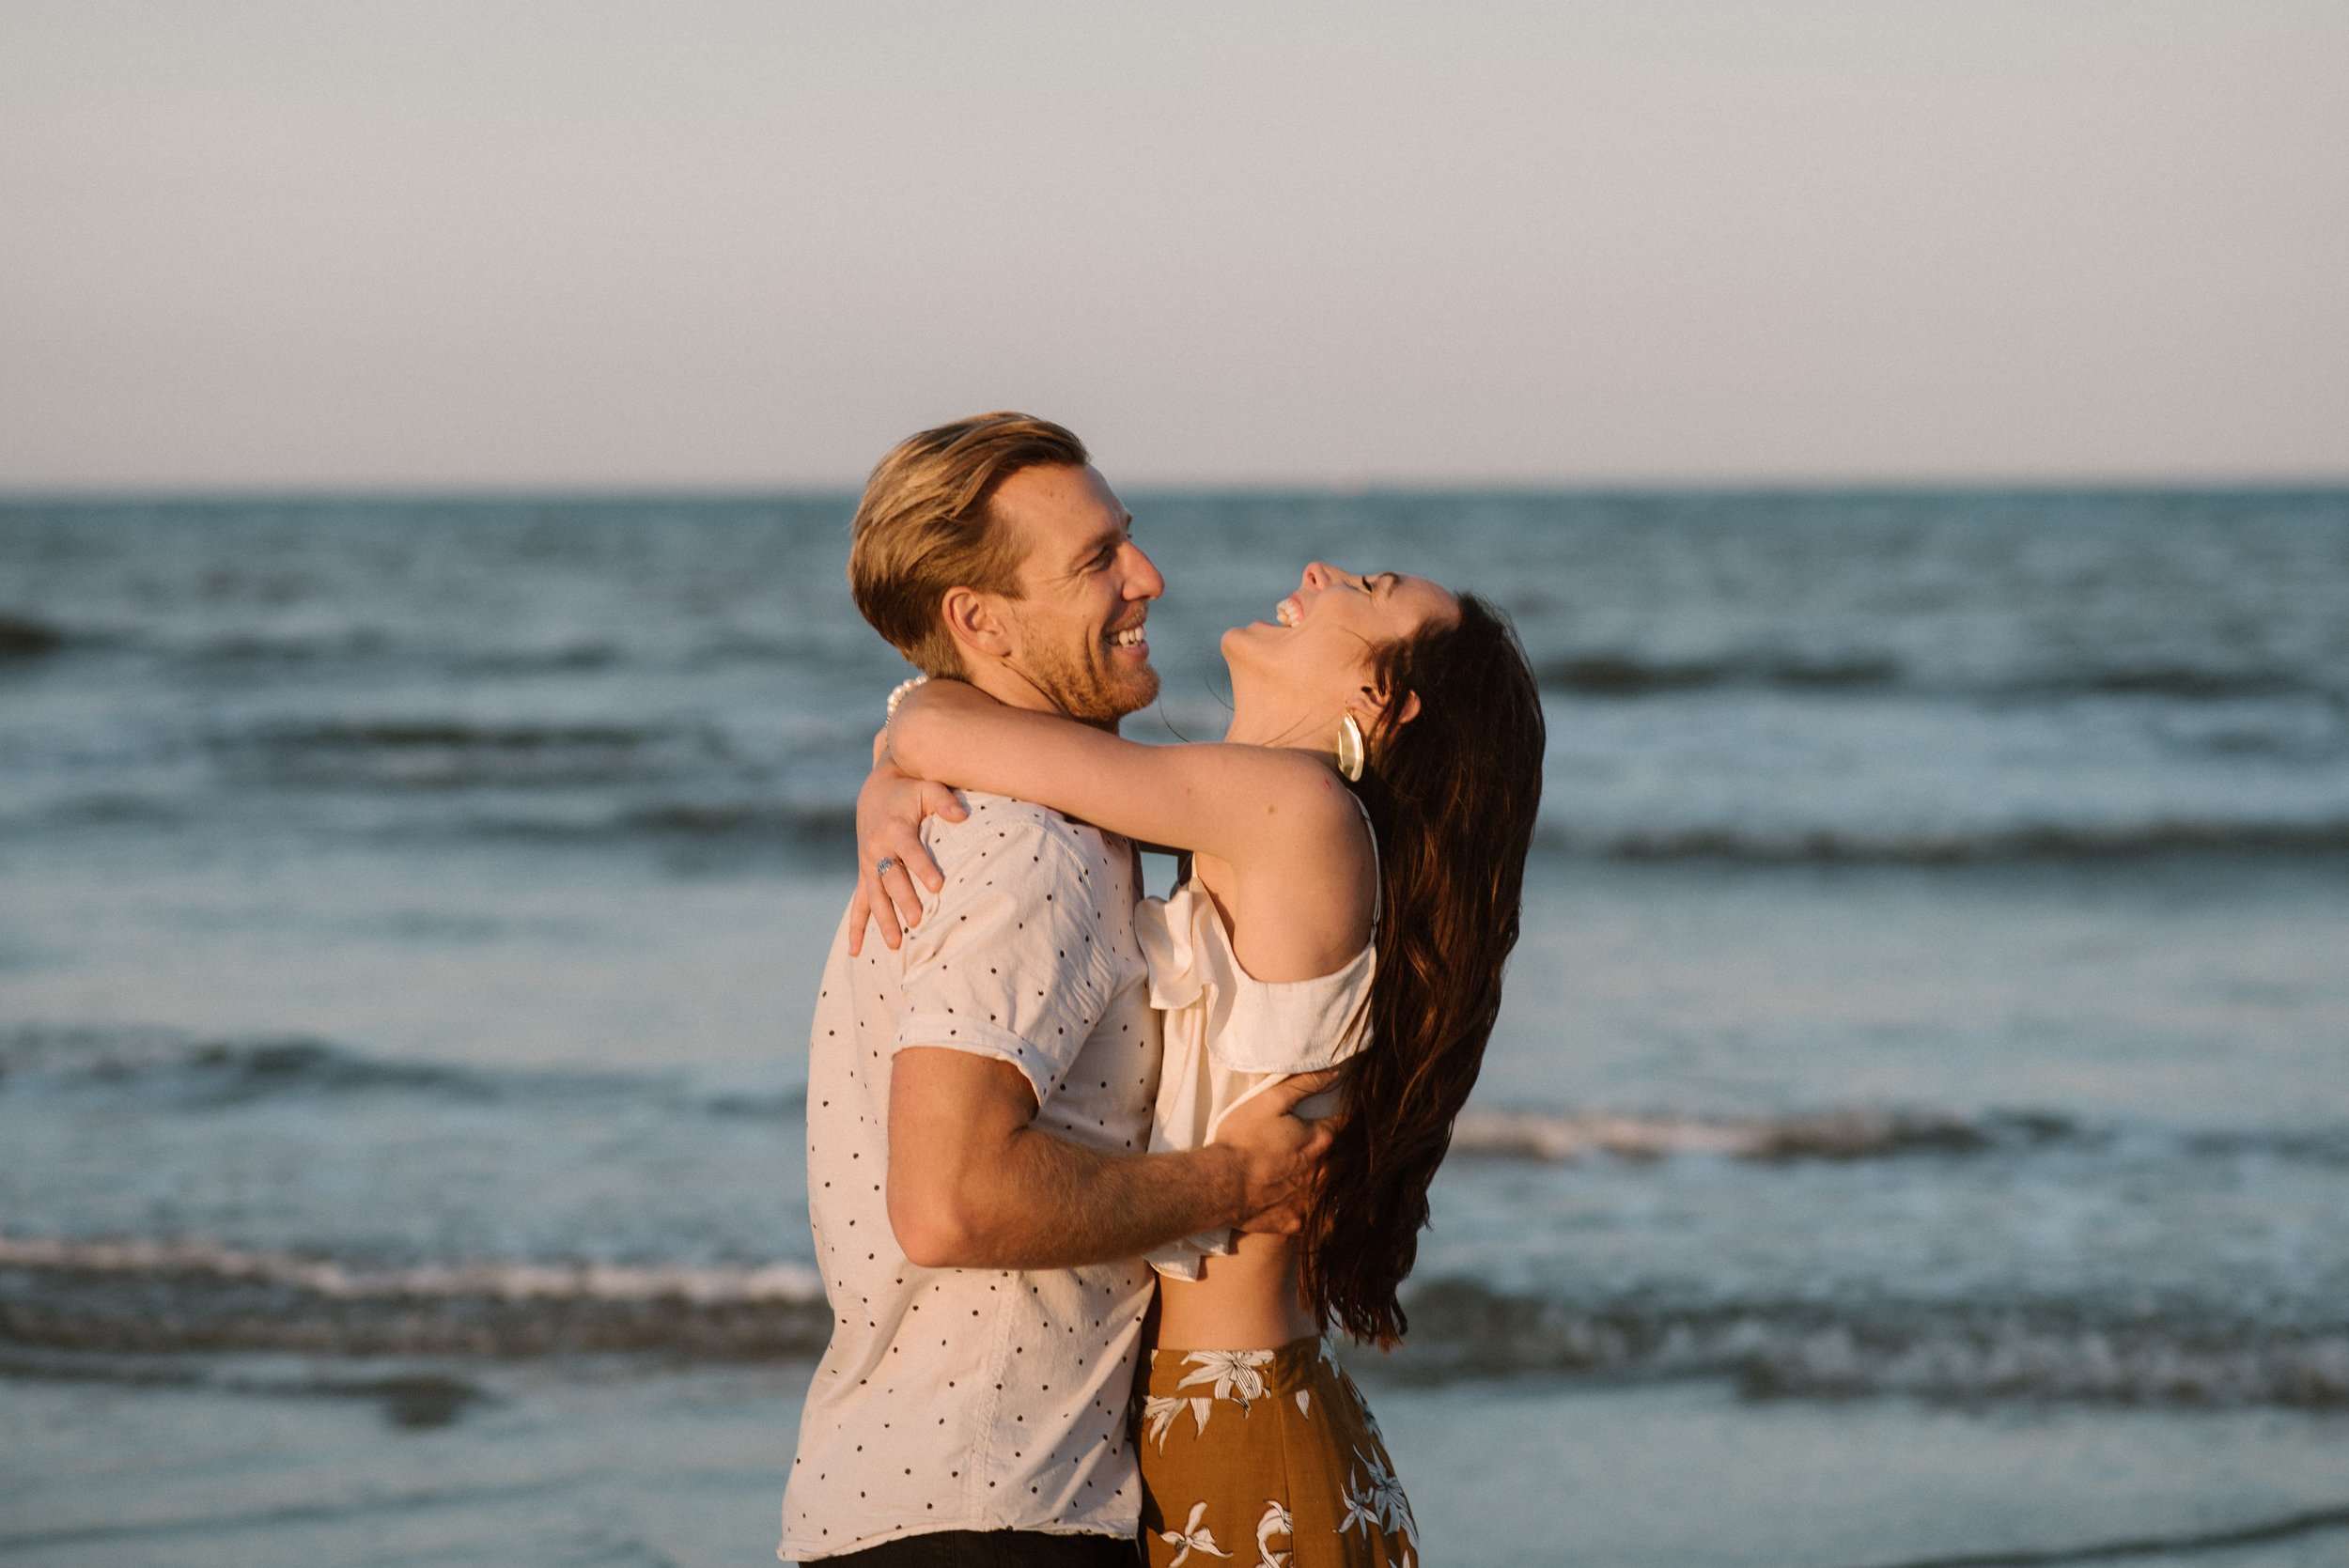 atlantic-beach-engagement-photos-heather-and-cody-15.jpg